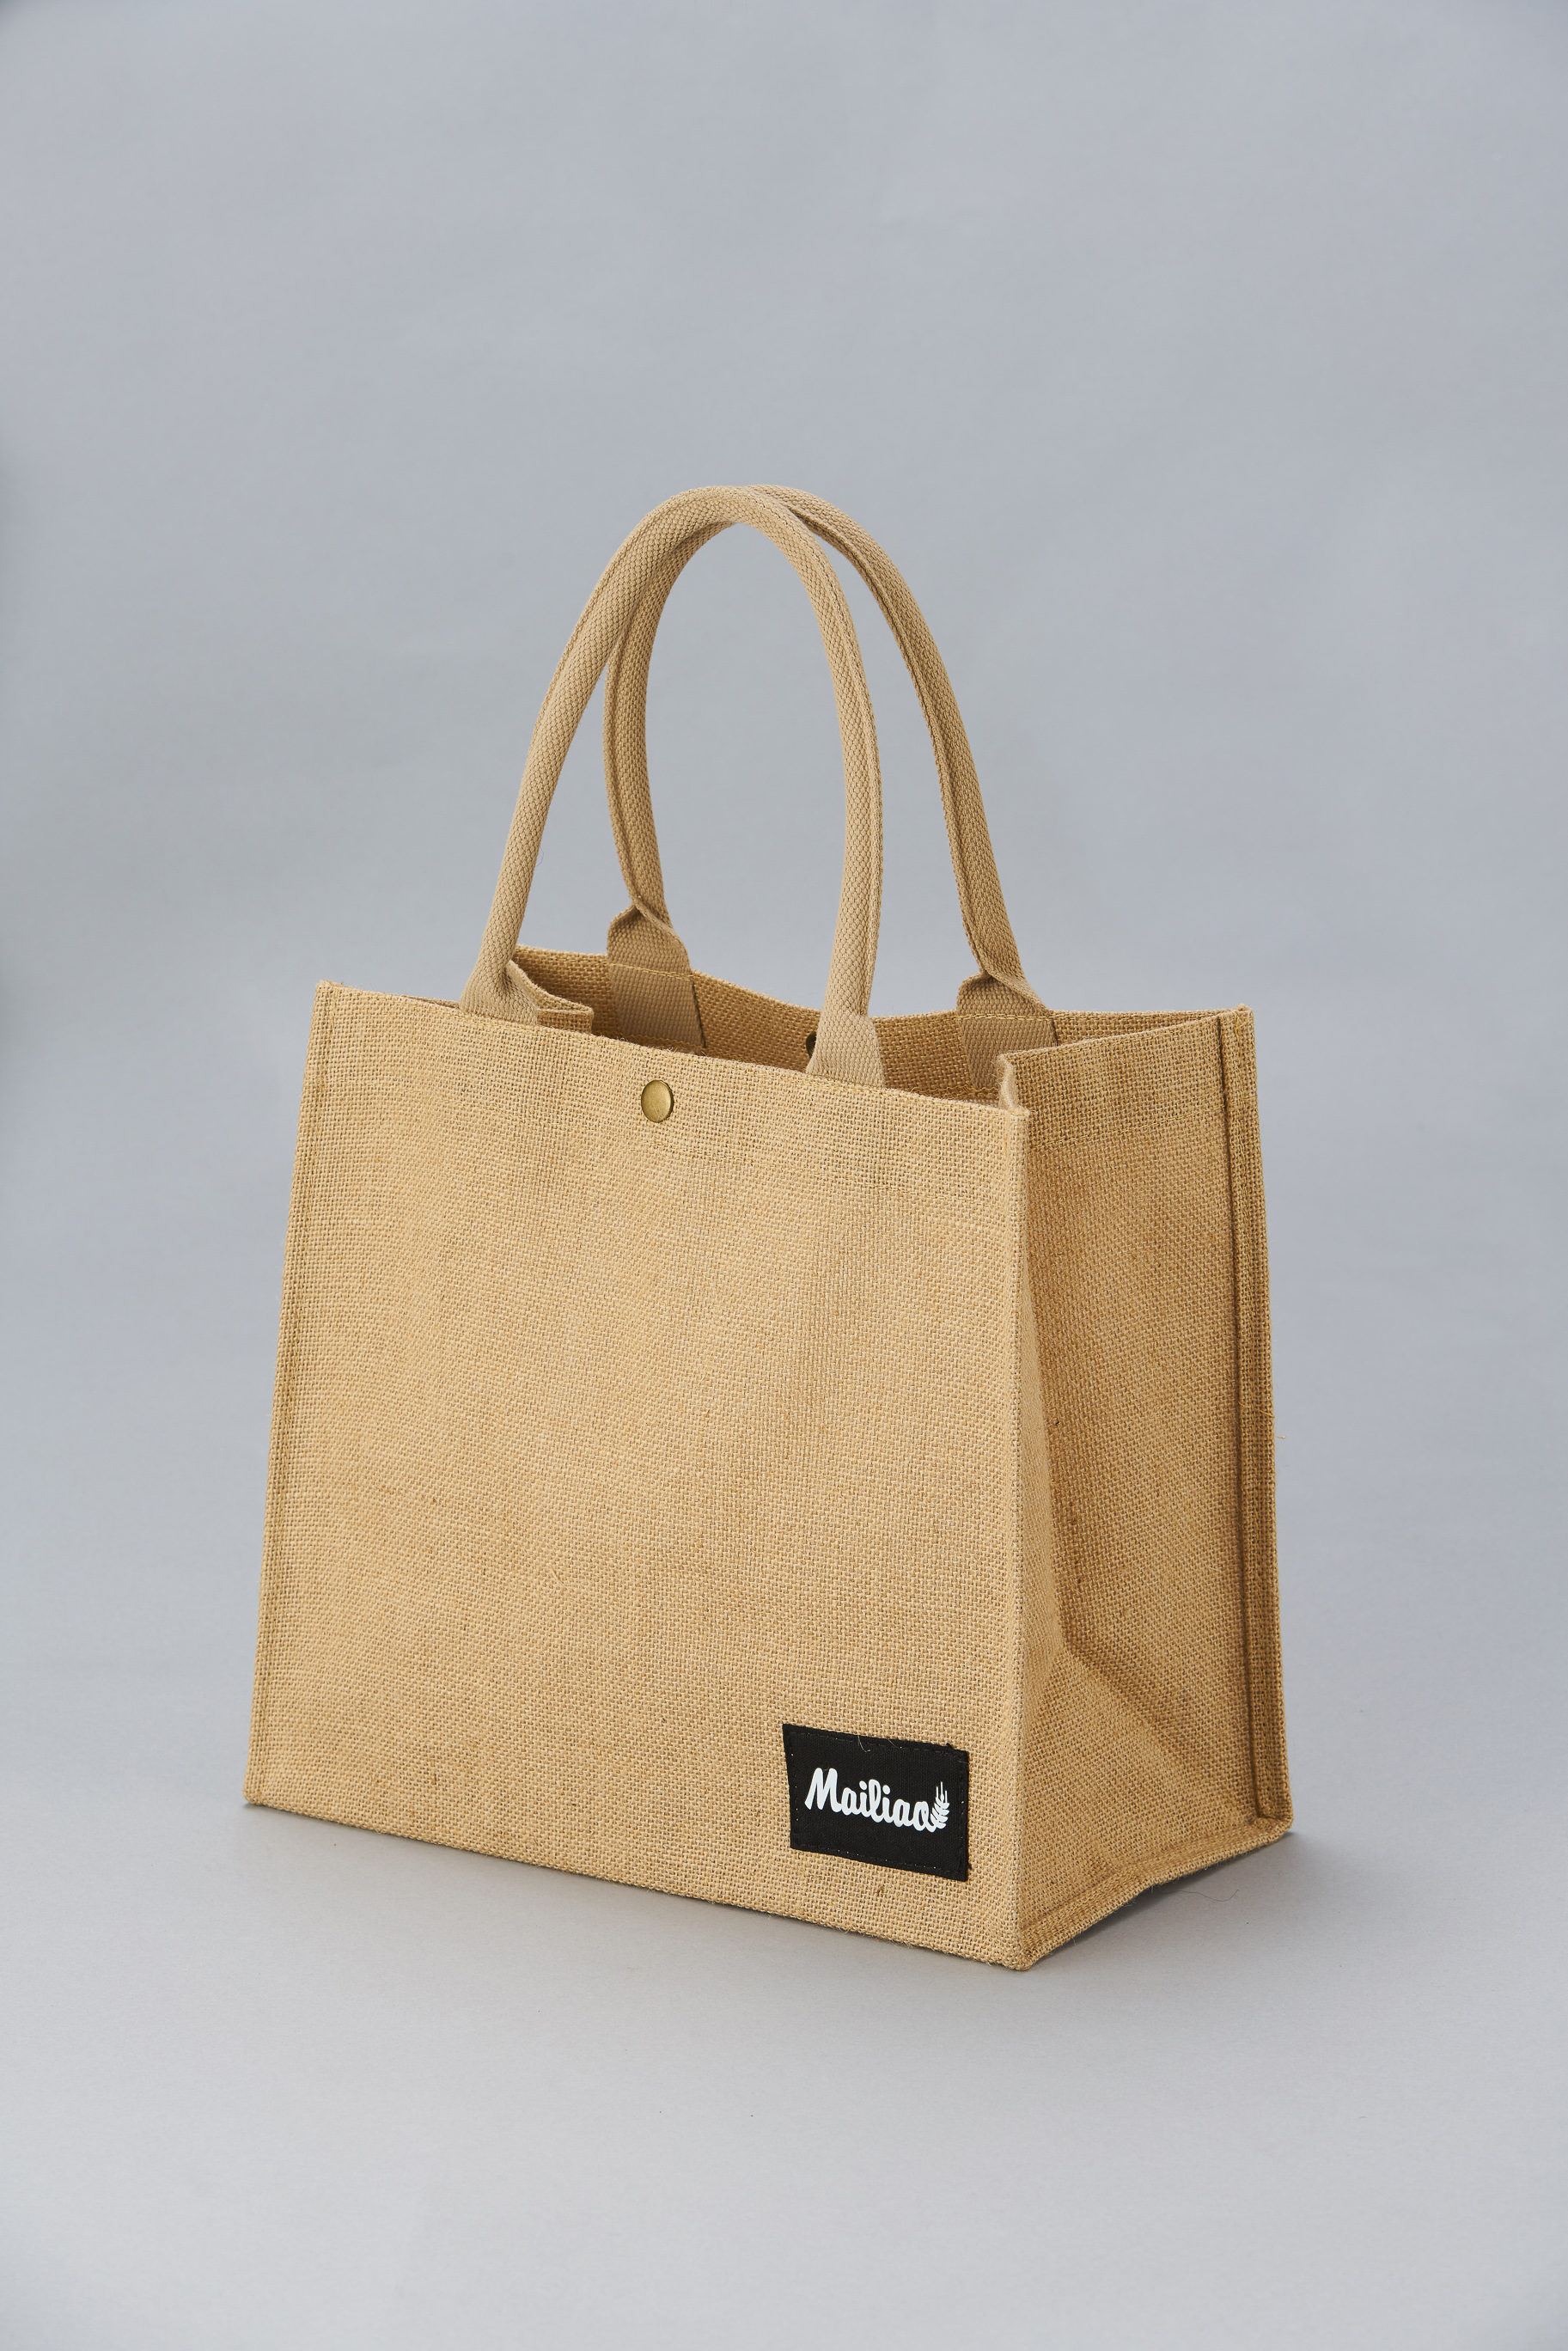 【Customized】Gusseted Jute Bag G0001